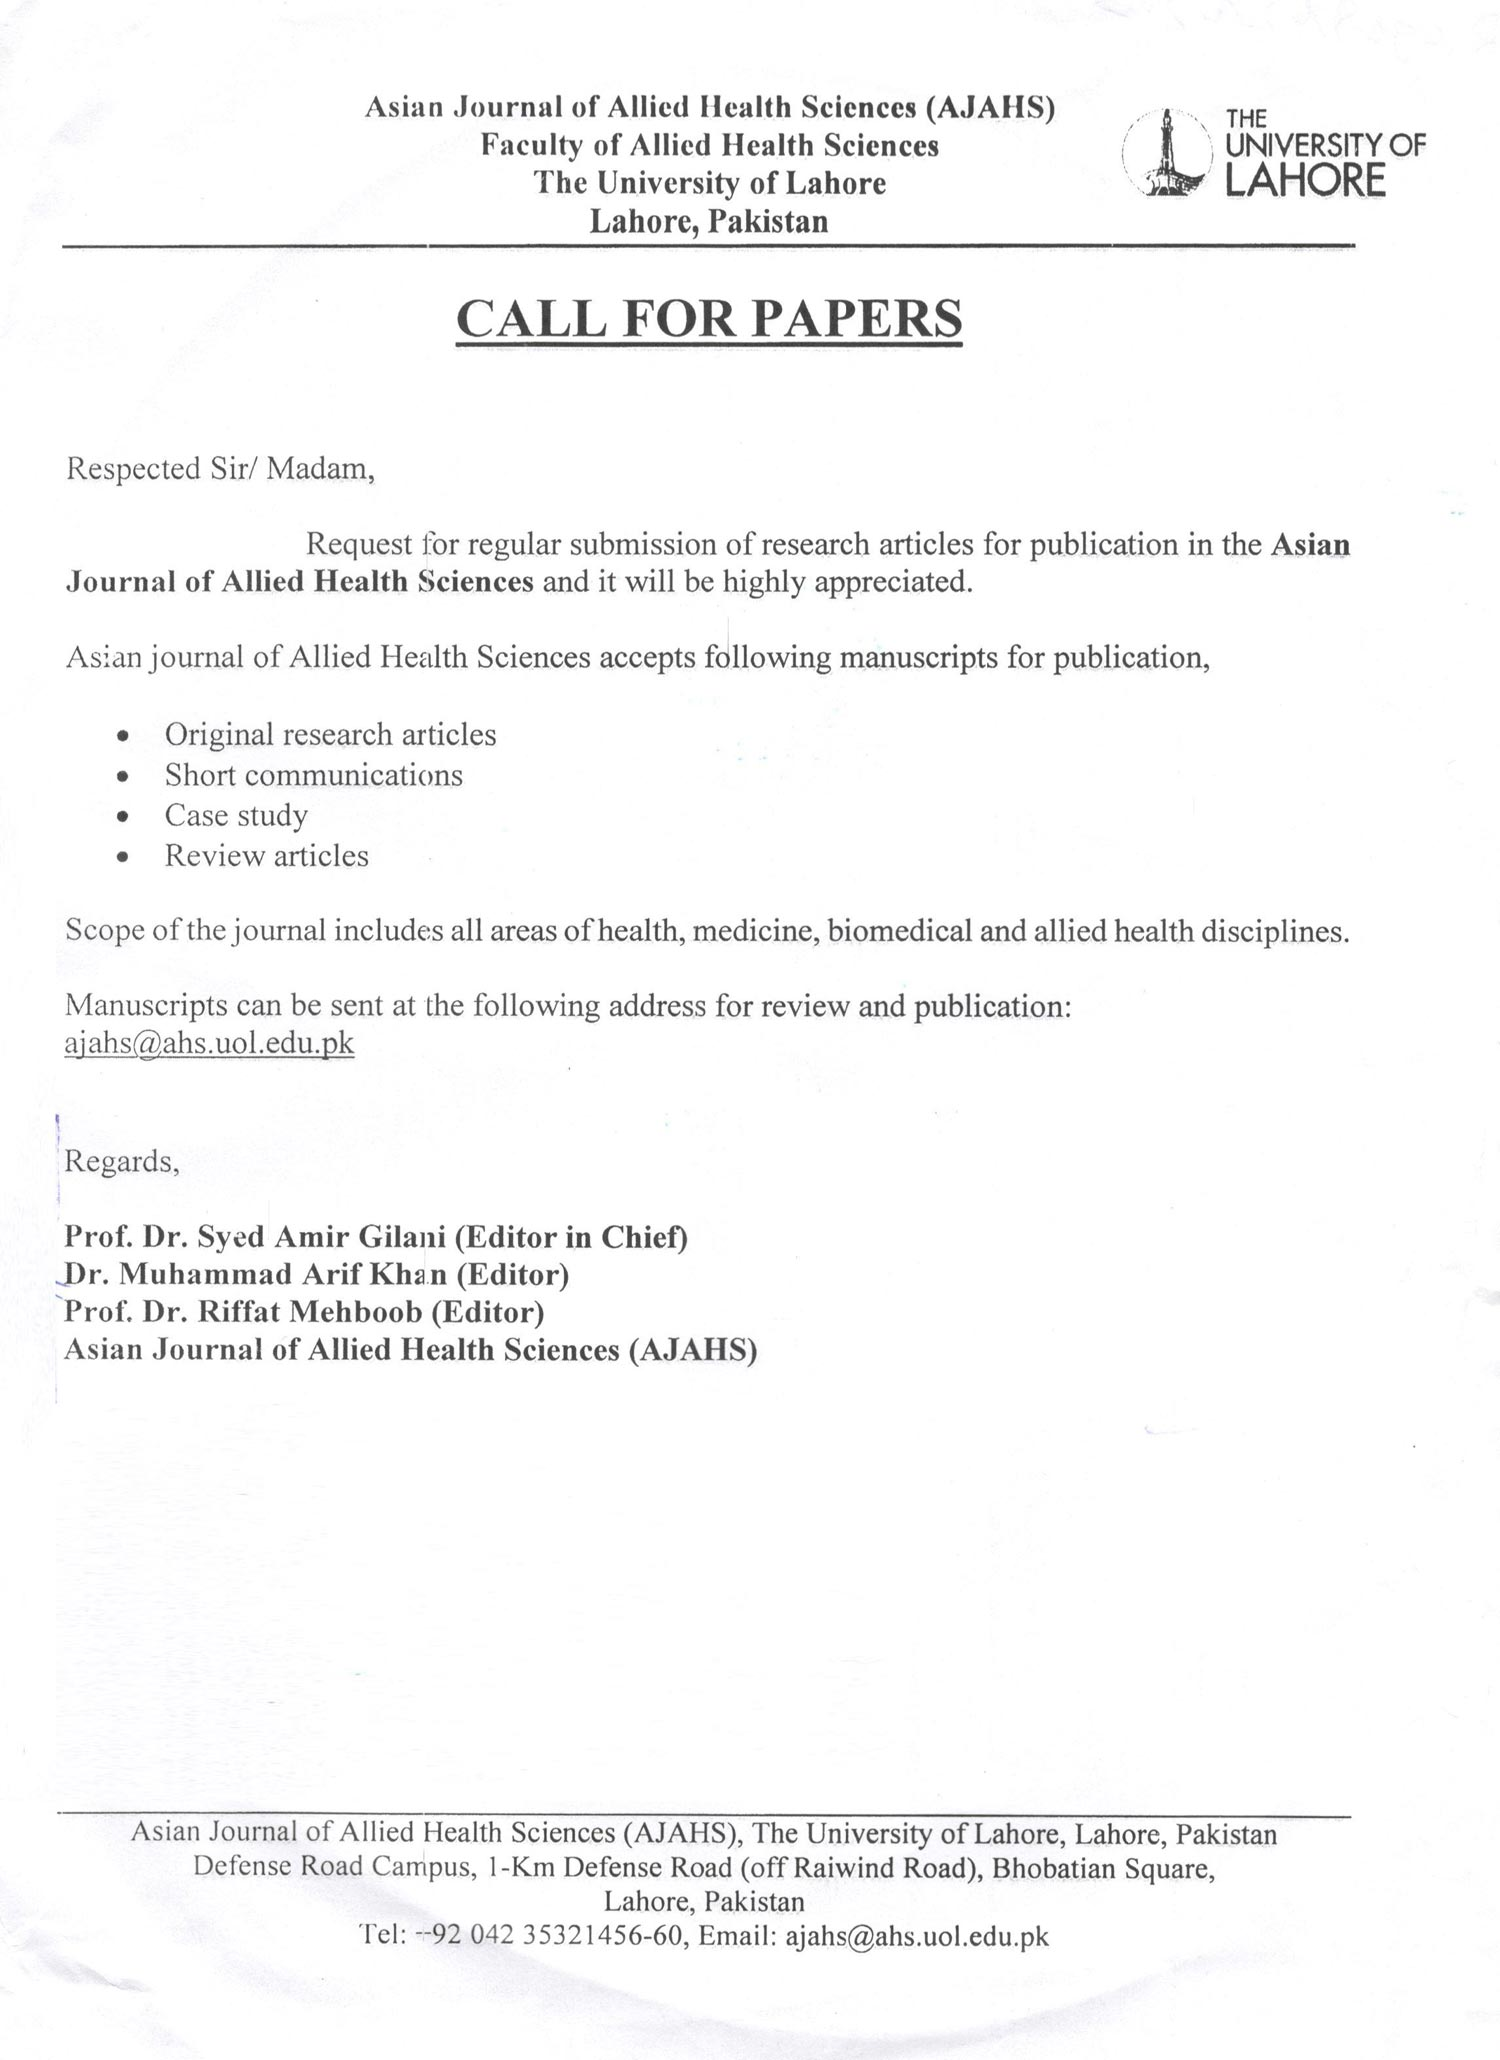 Call for Papers - Asian Journal of Allied Health Sciences